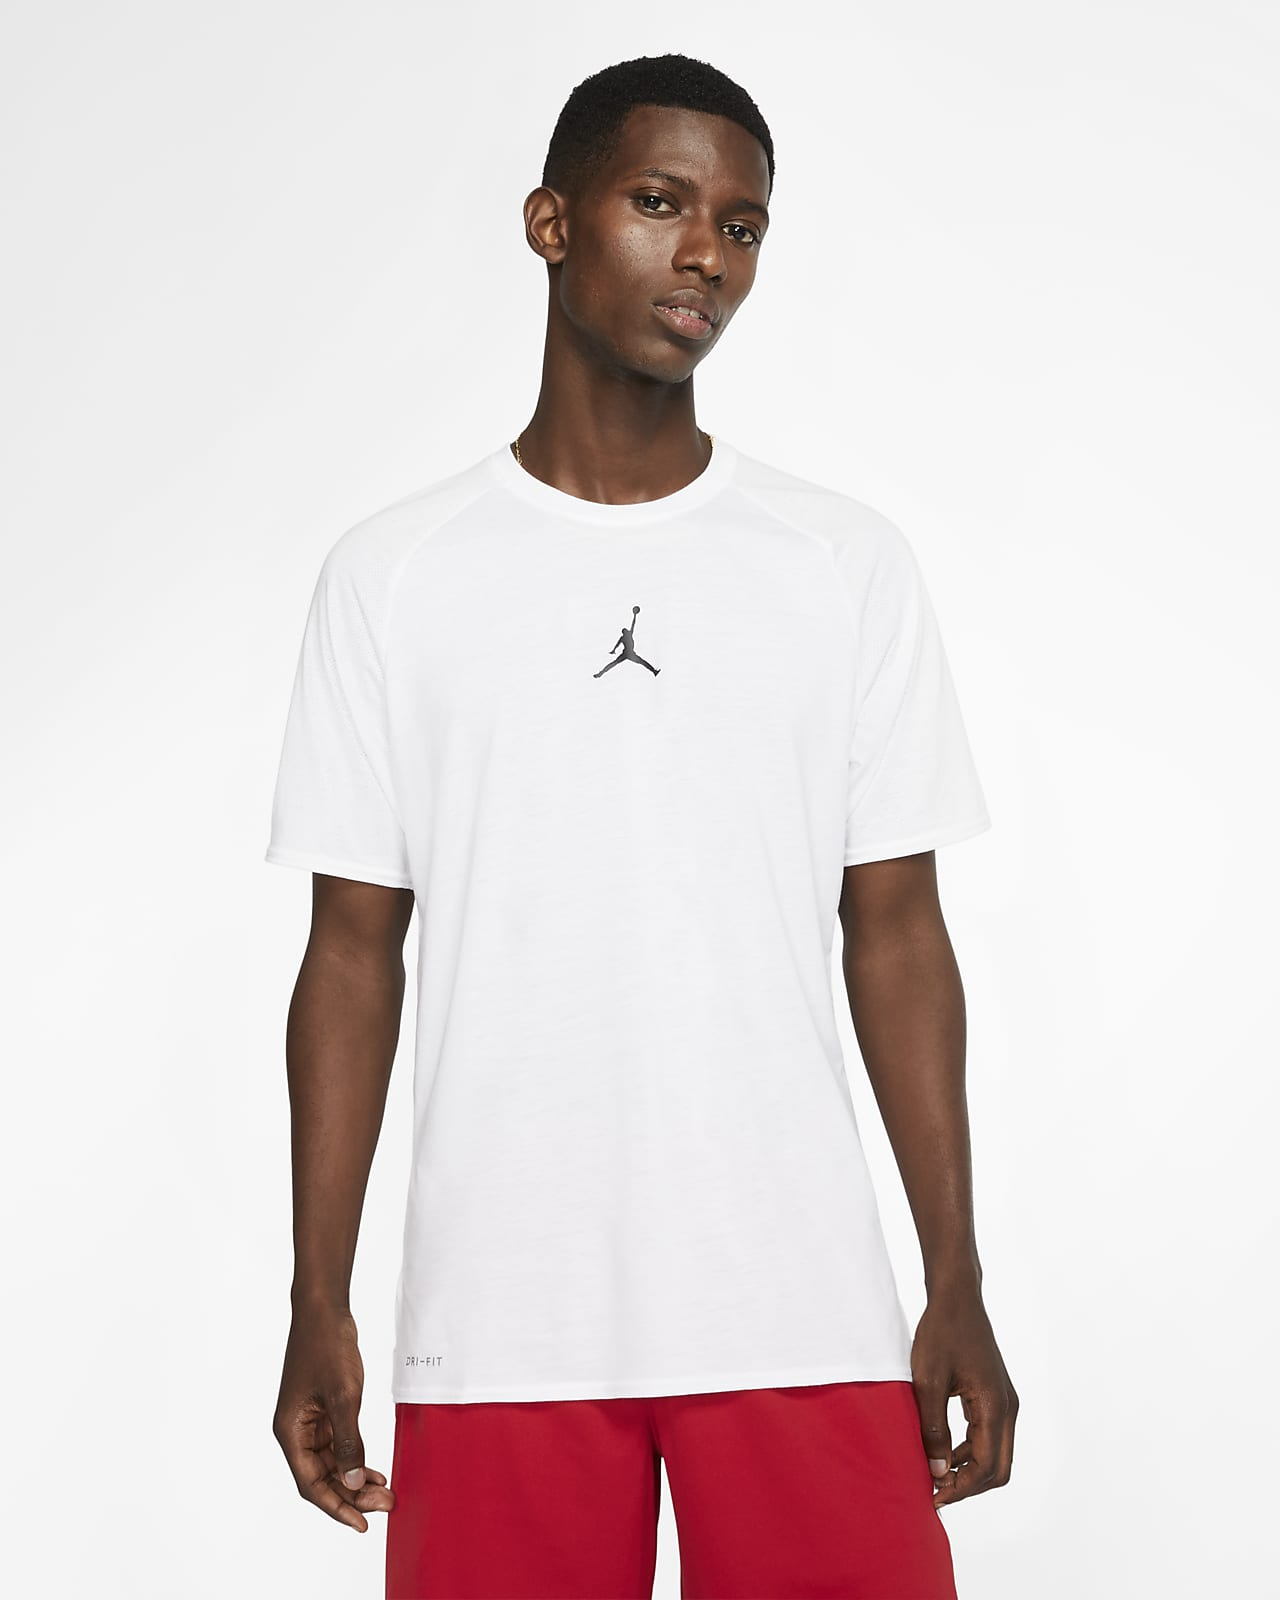 Jordan 23 Alpha Men's Short-Sleeve Training Top